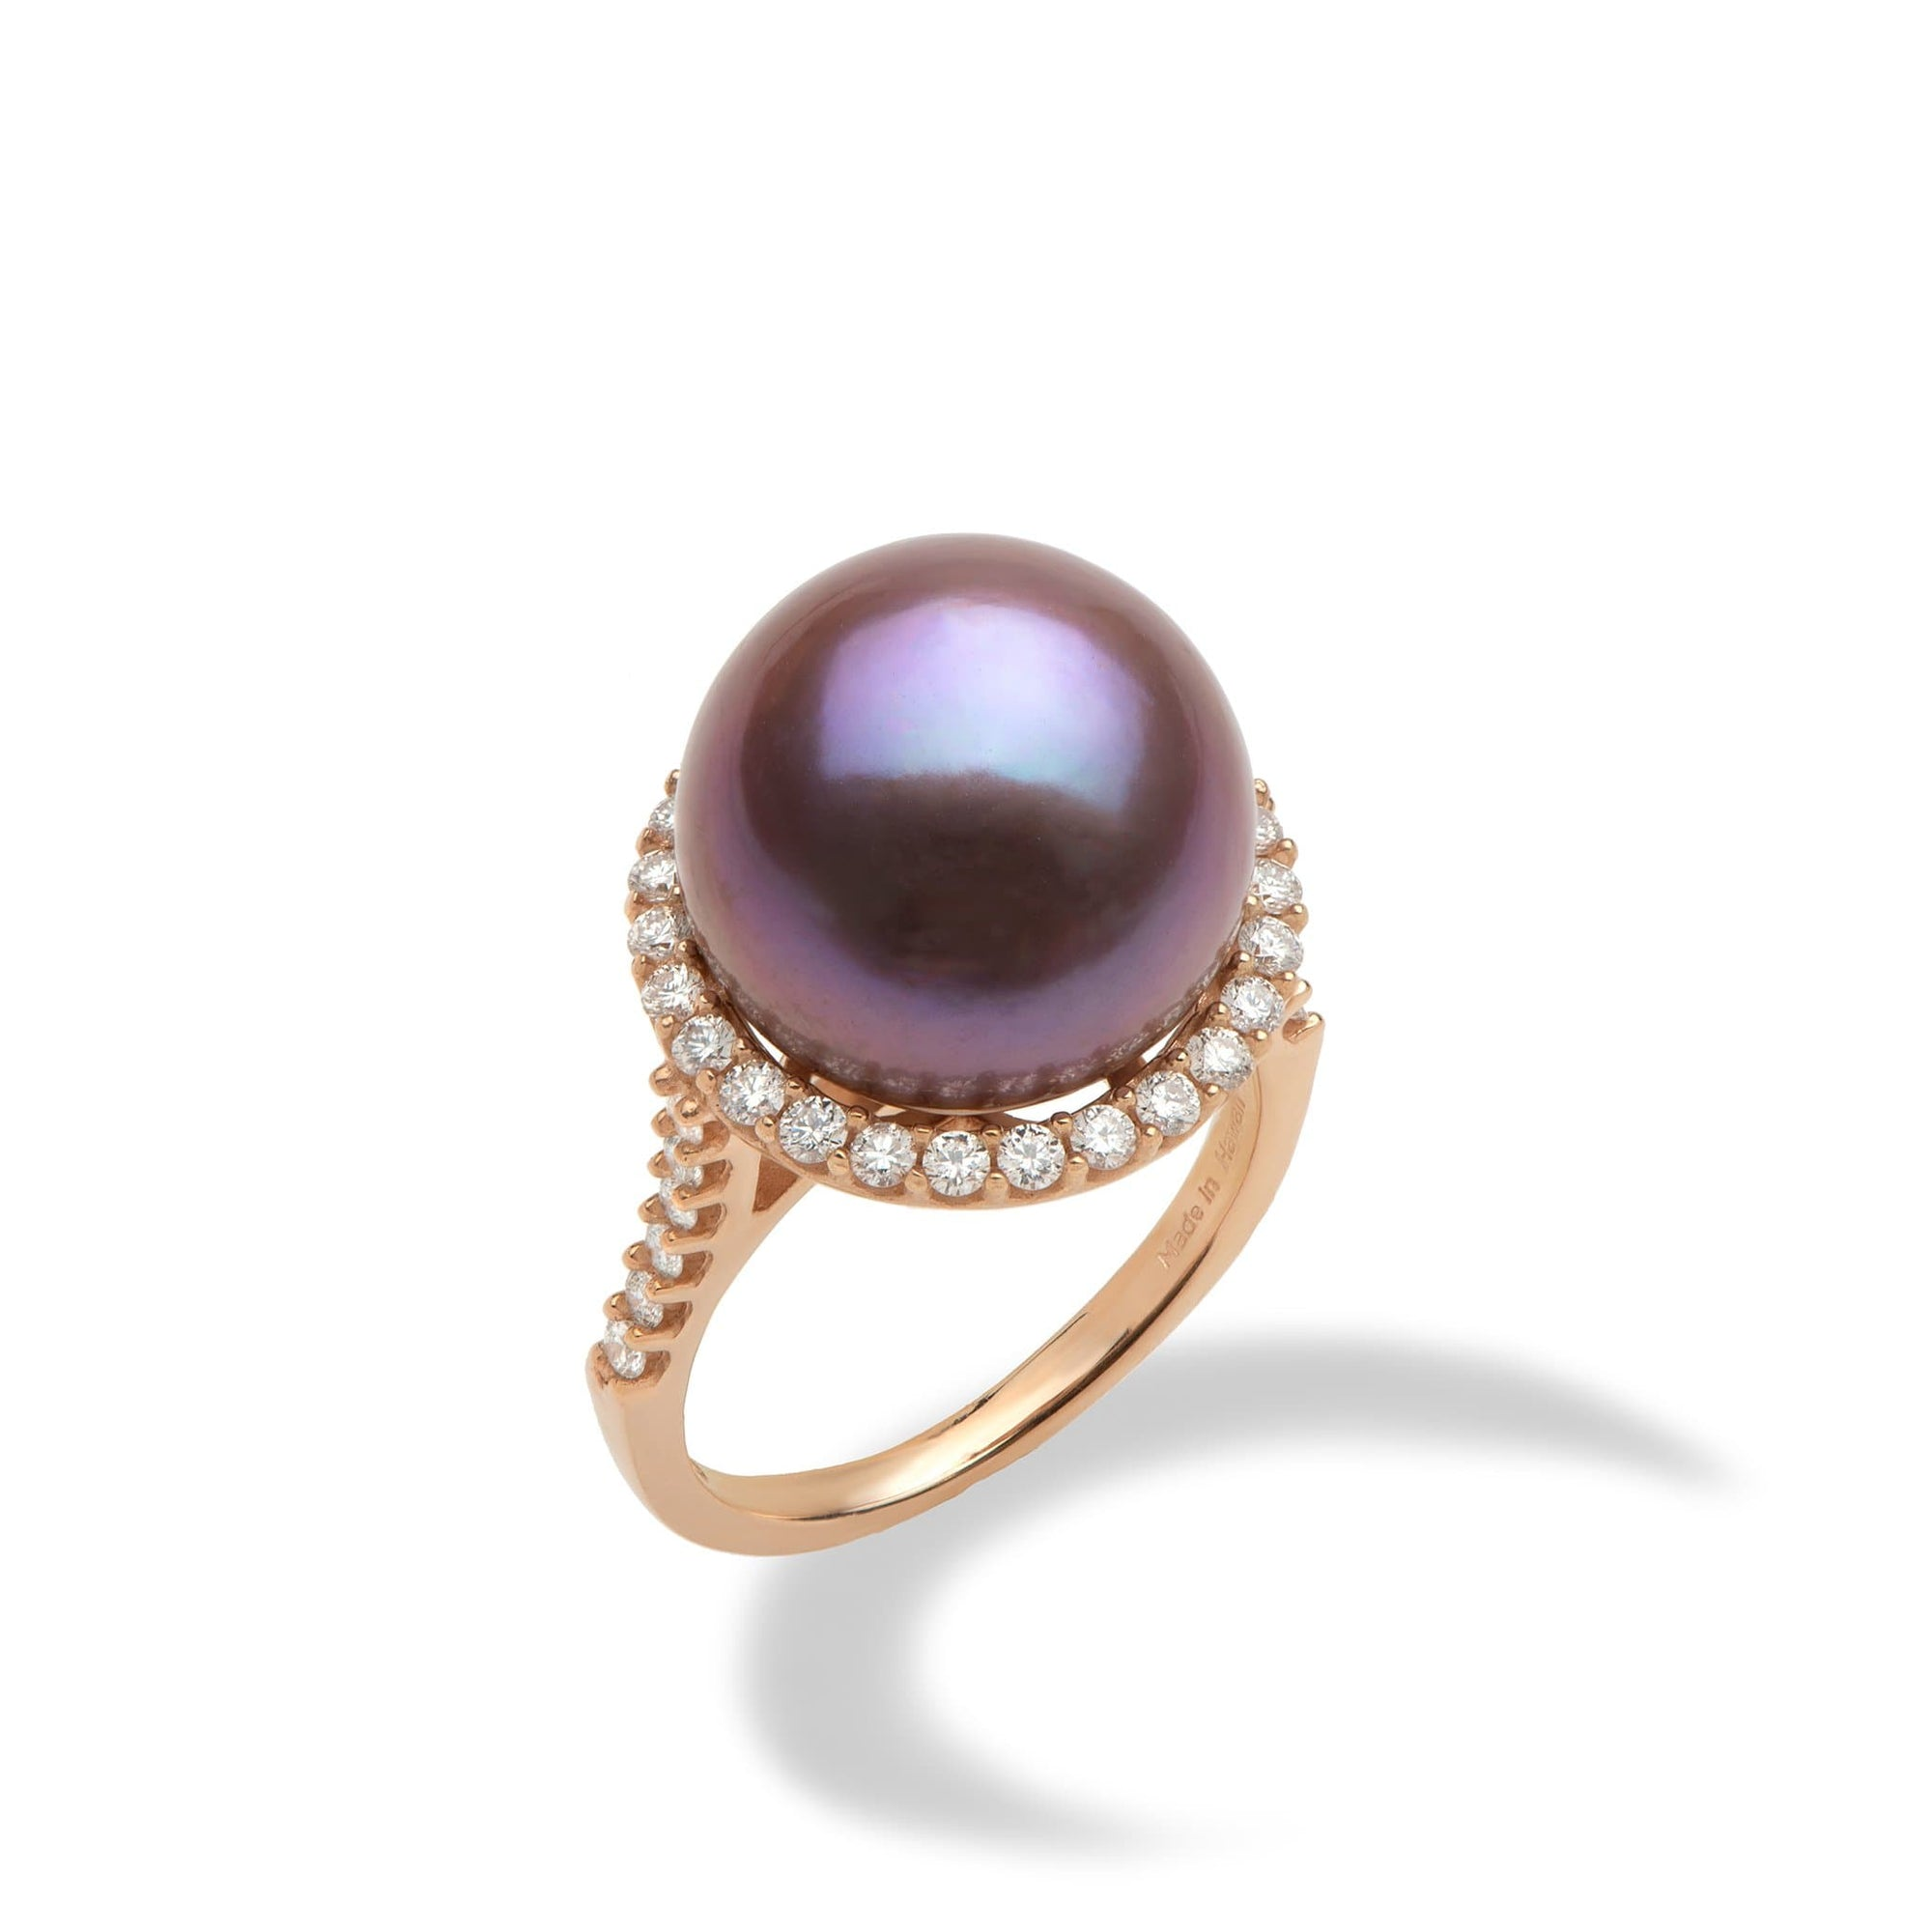 Ultra Violet Freshwater Pearl Ring with Diamonds in 14K Rose Gold (14-15mm) - Maui Divers Jewelry